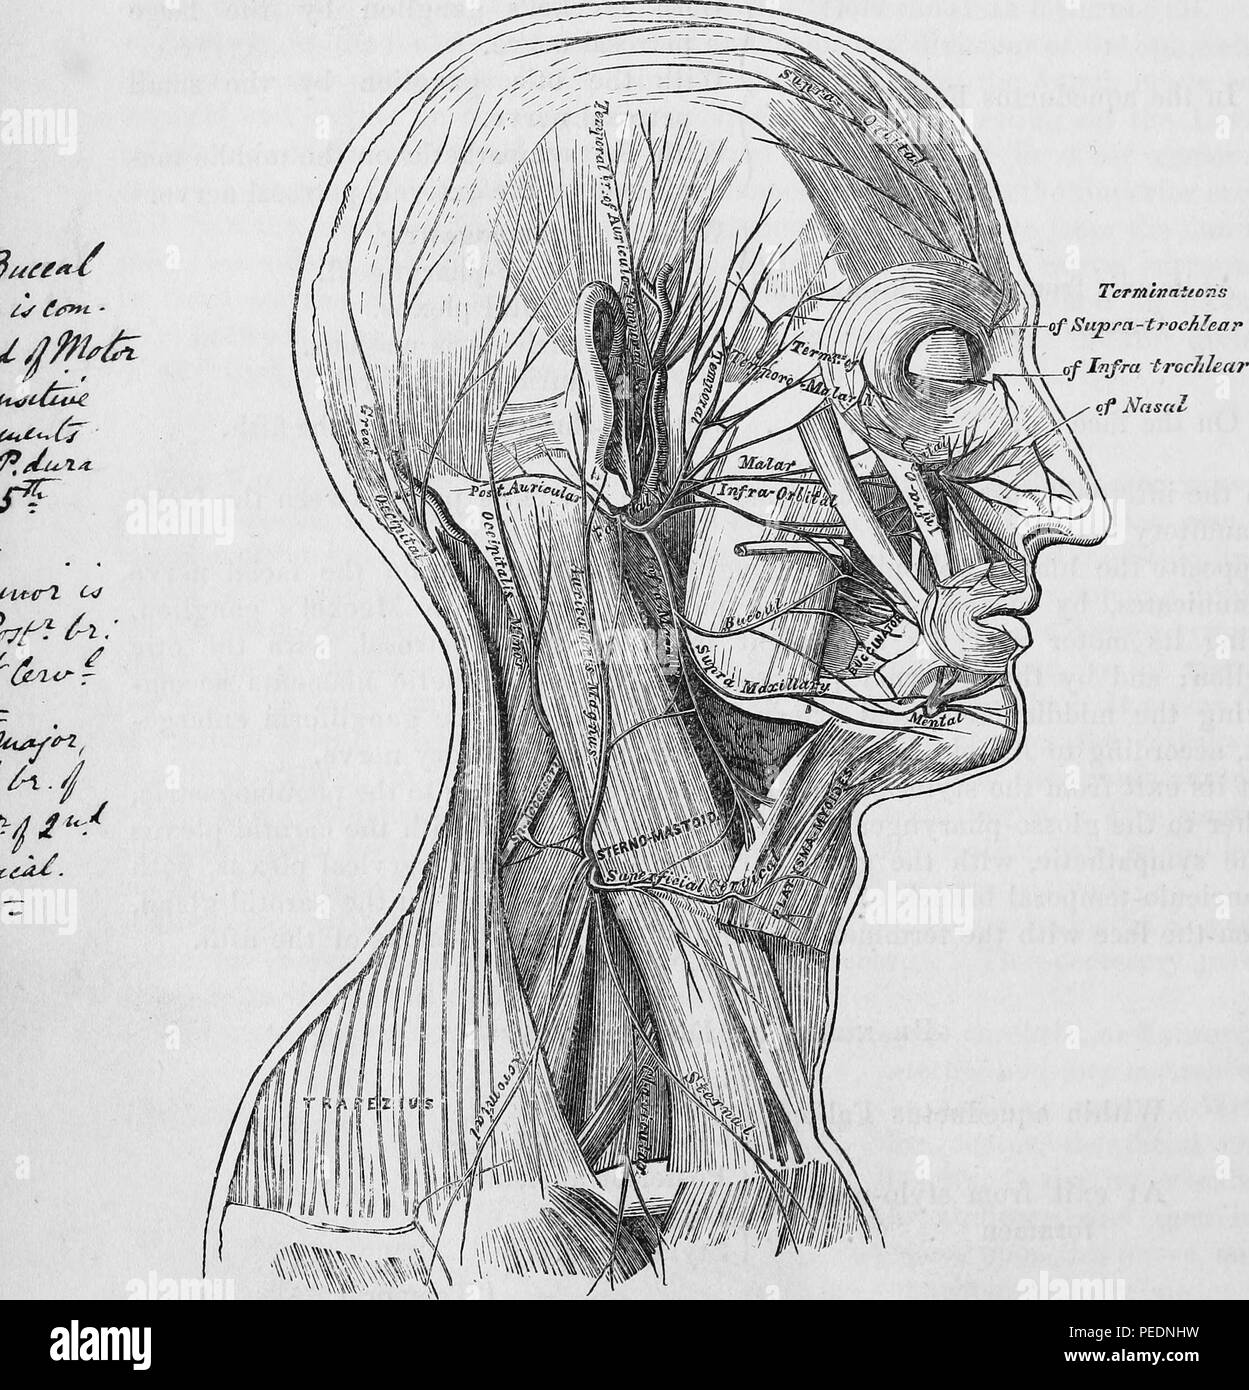 Black And White Print Illustrating A Section Of A Human Head With